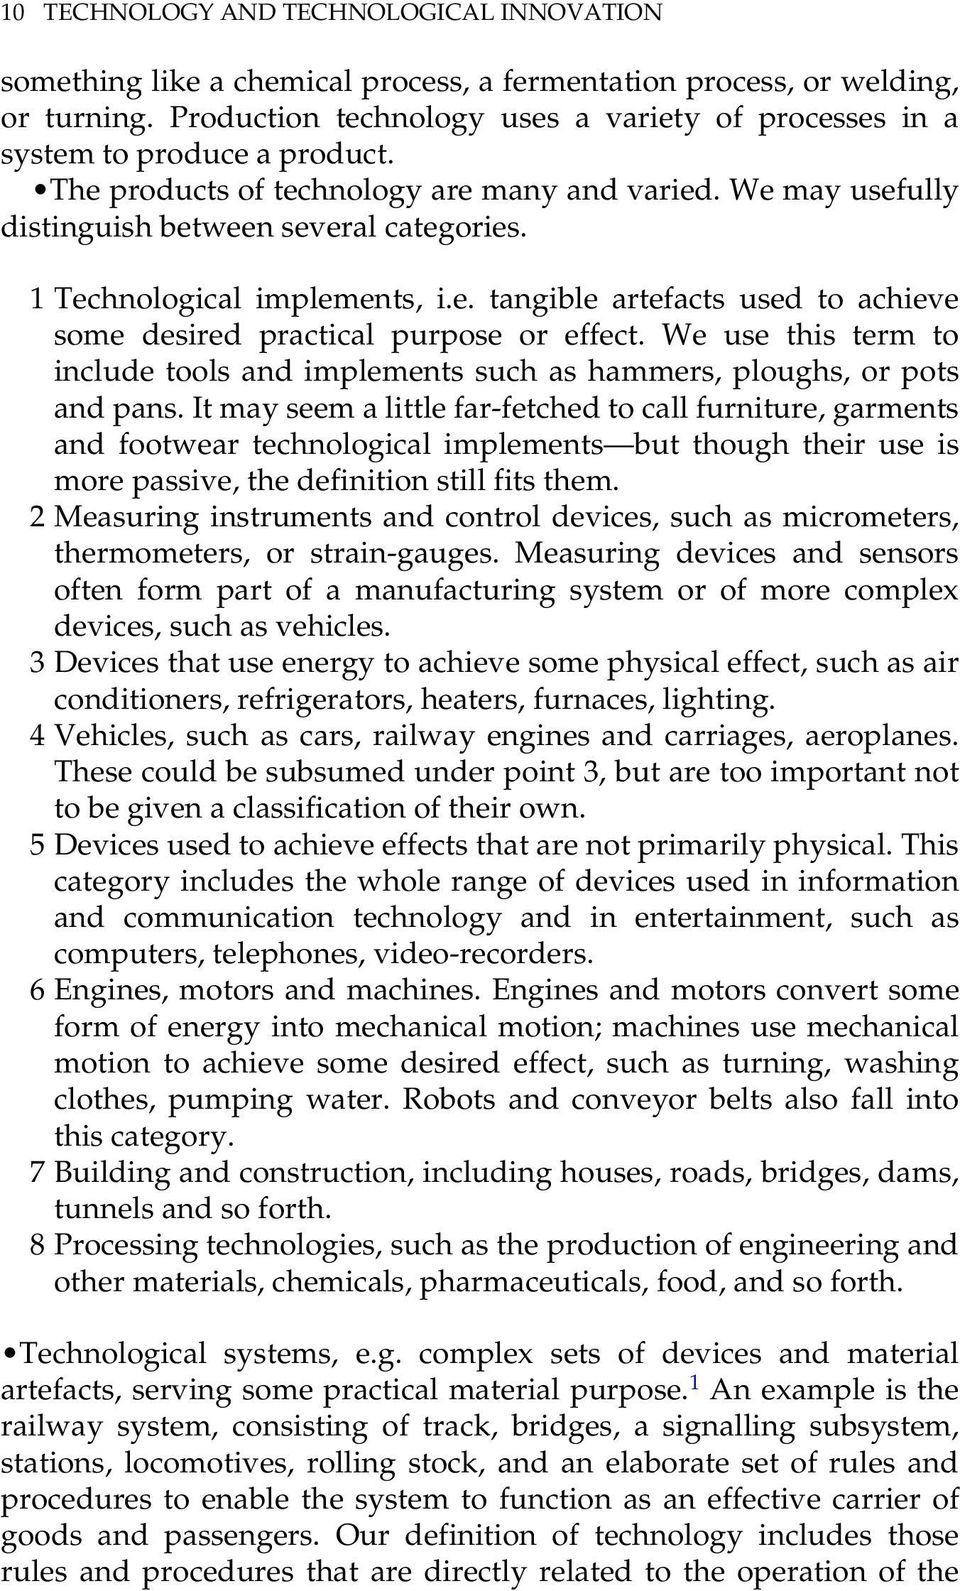 1 Technological implements, i.e. tangible artefacts used to achieve some desired practical purpose or effect.